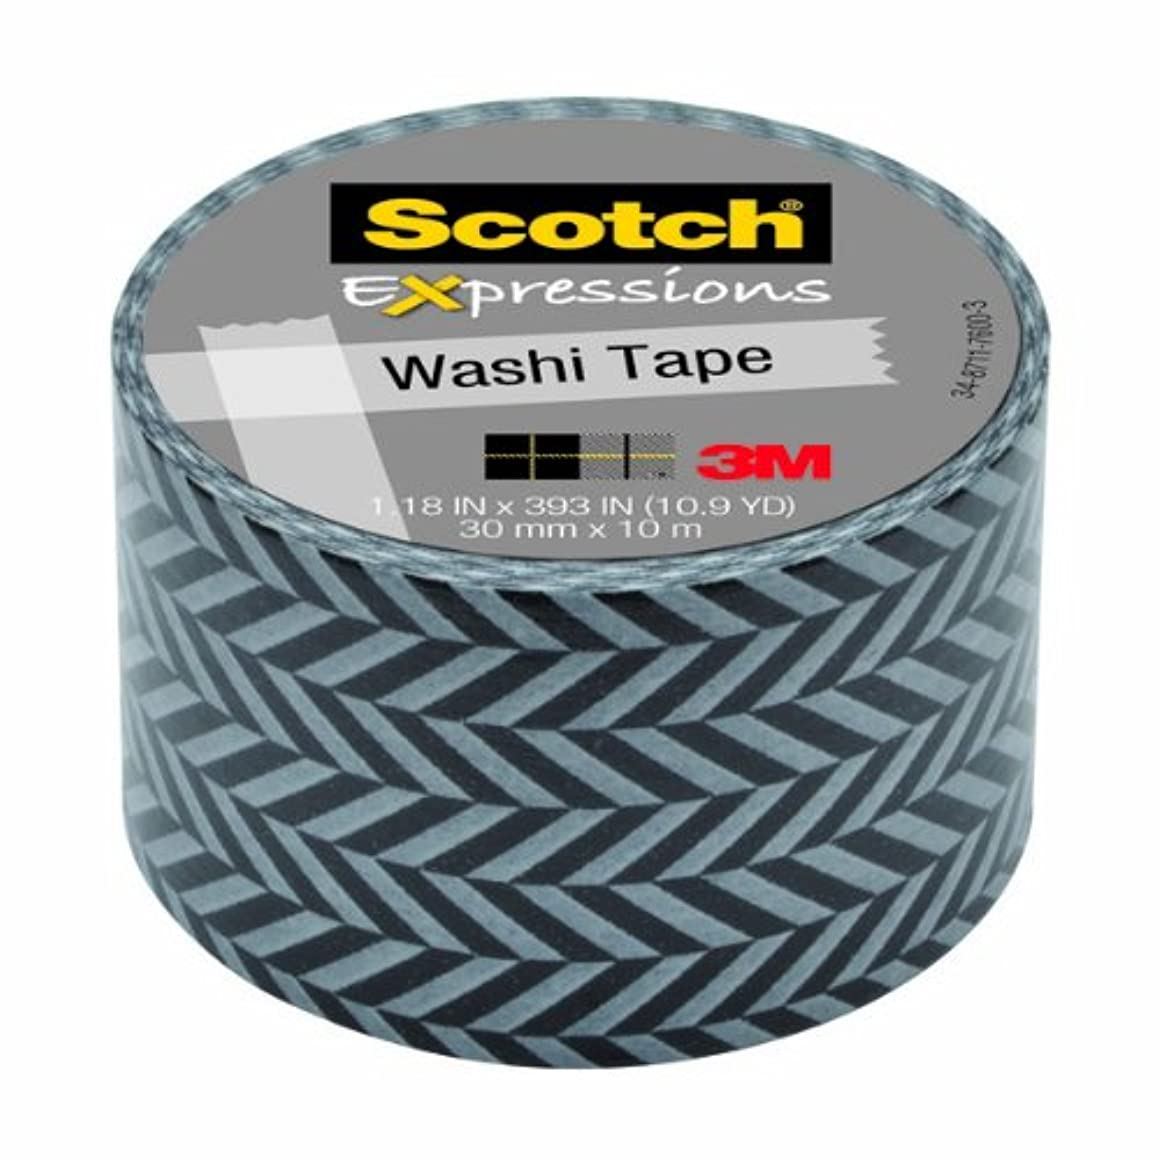 Scotch Expressions Washi Tape, 1.18-Inches x 393-Inches, Zig Zag, 6 Rolls/Pack